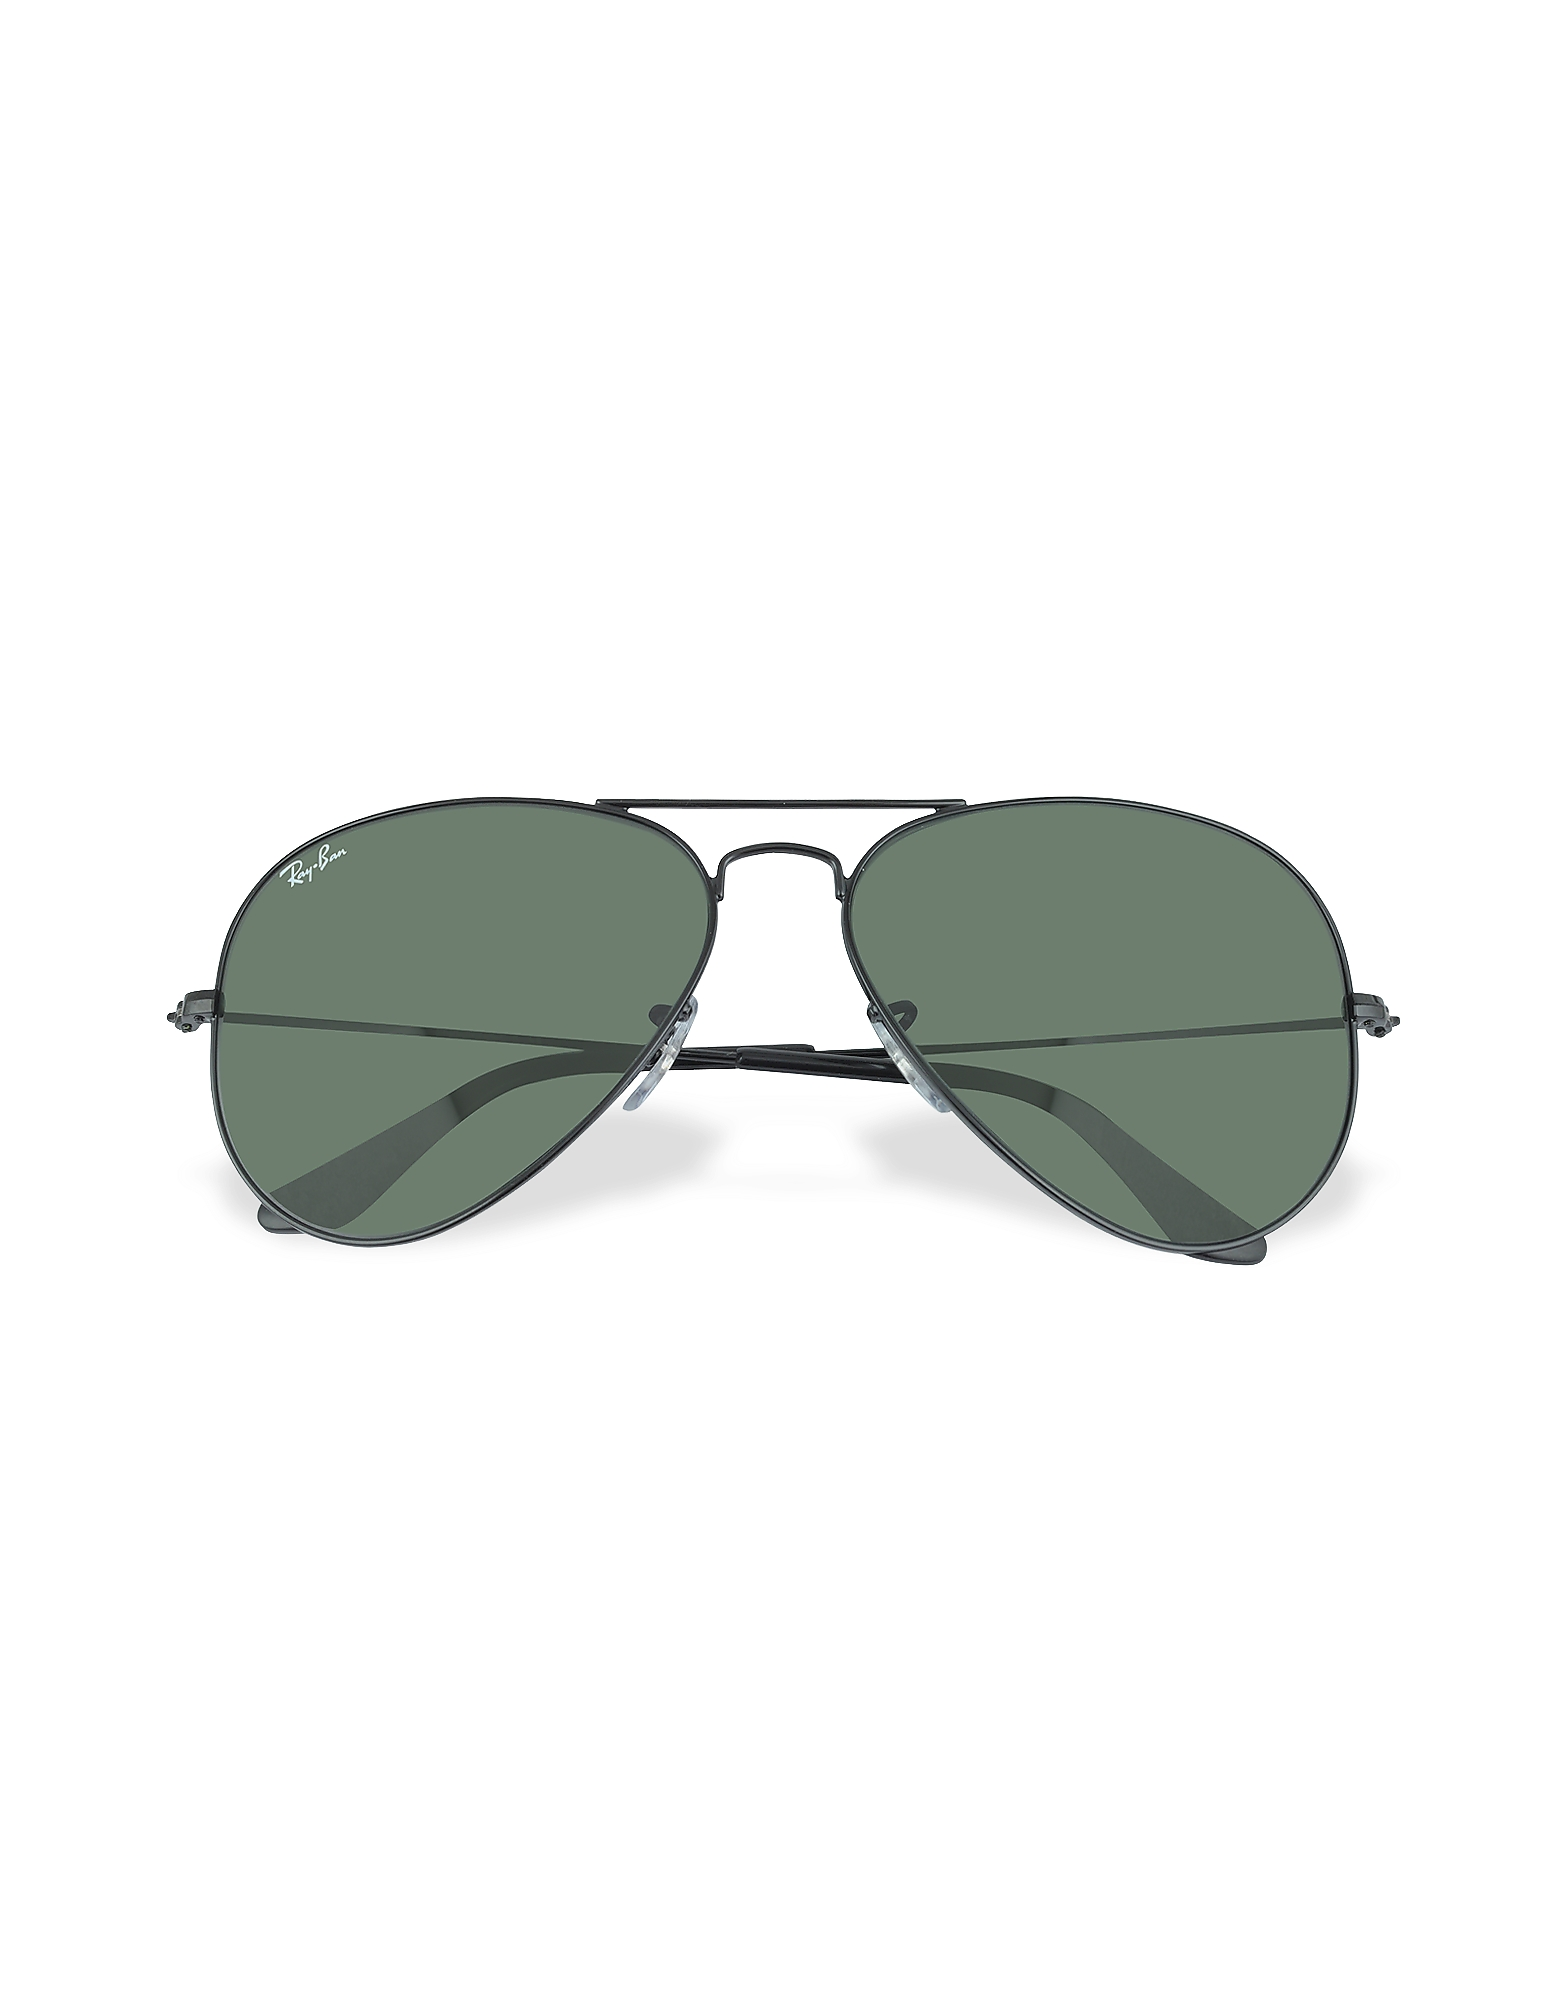 Ray Ban Sunglasses, Aviator - Large Metal Sunglasses